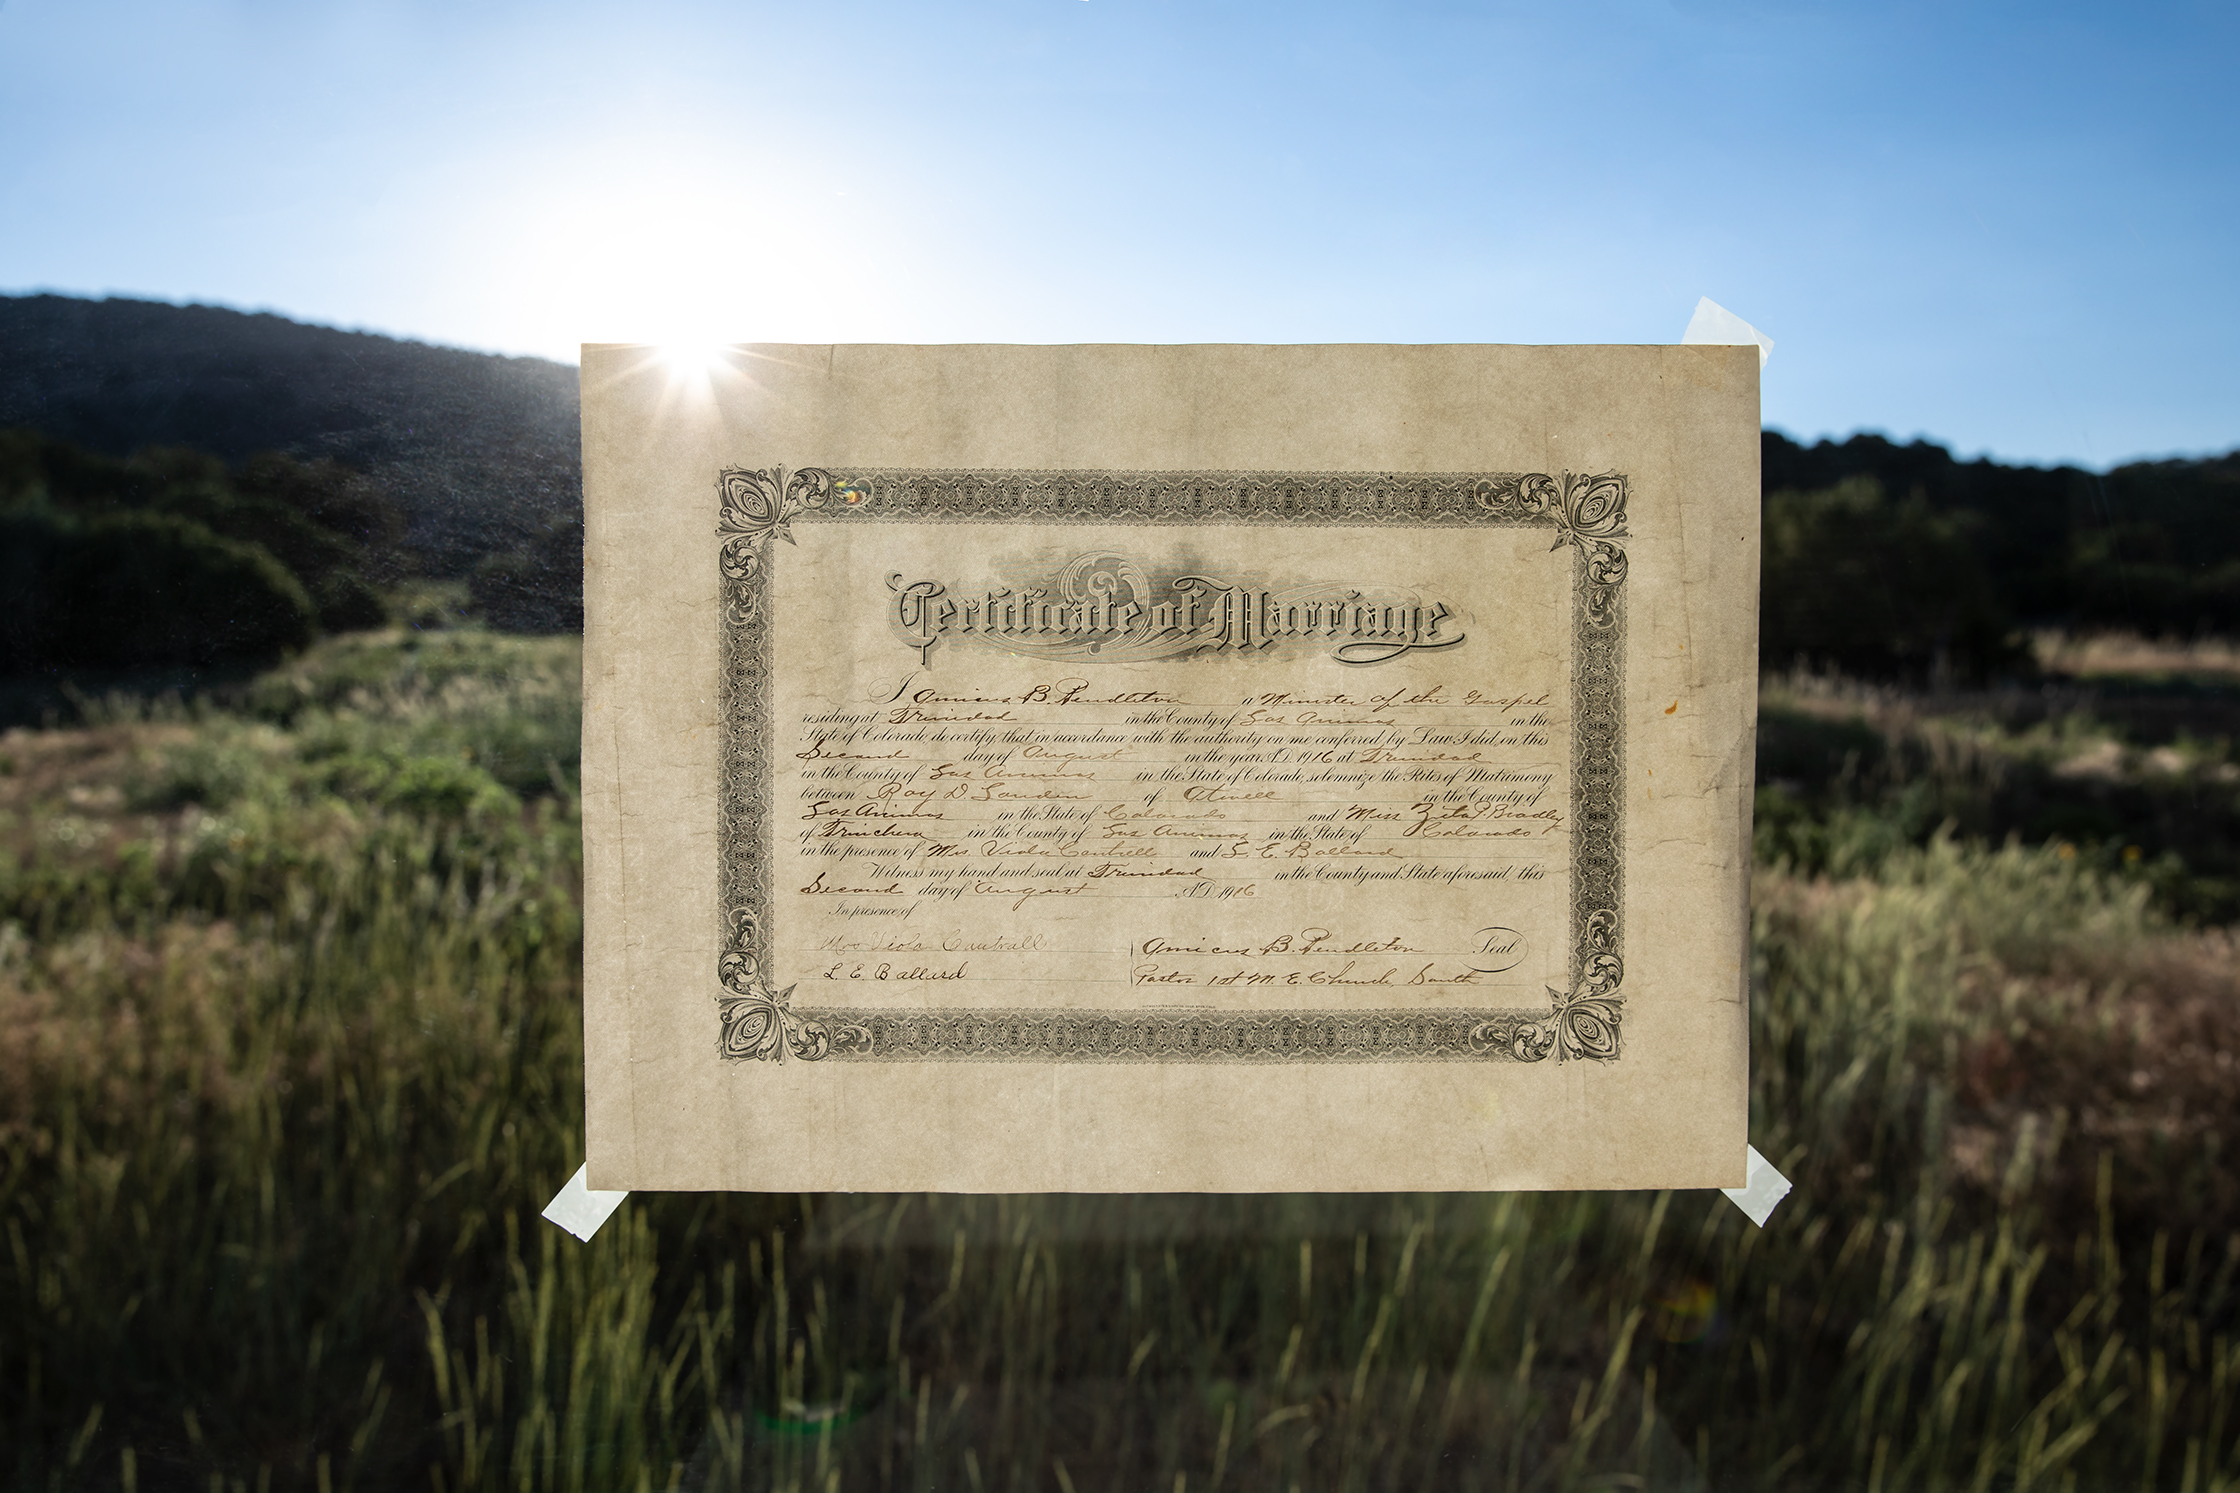 Their marriage certificate - August 2nd, 1916